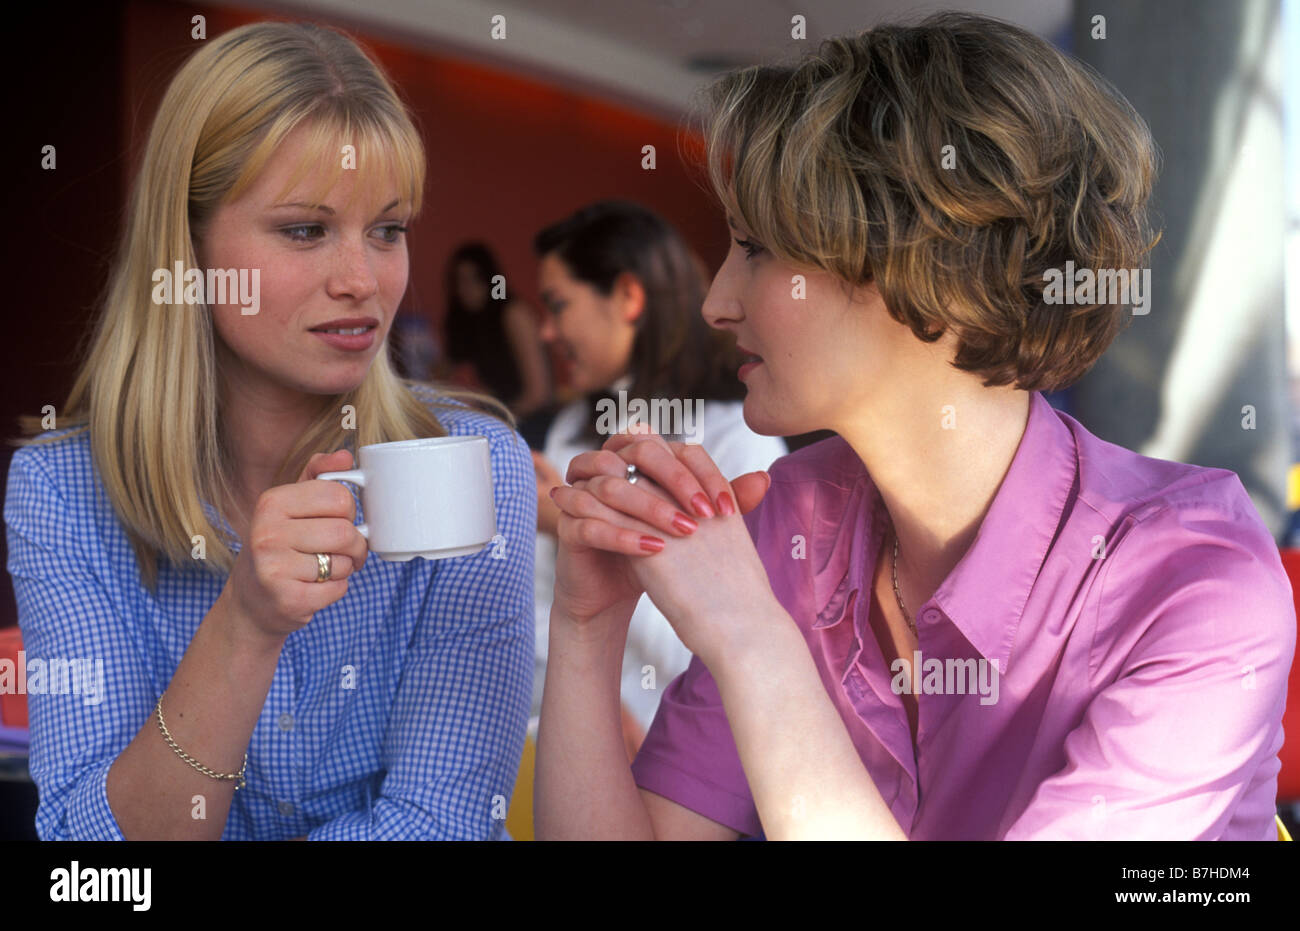 2 women talking seriously over a cup of coffee in a restaurant - Stock Image